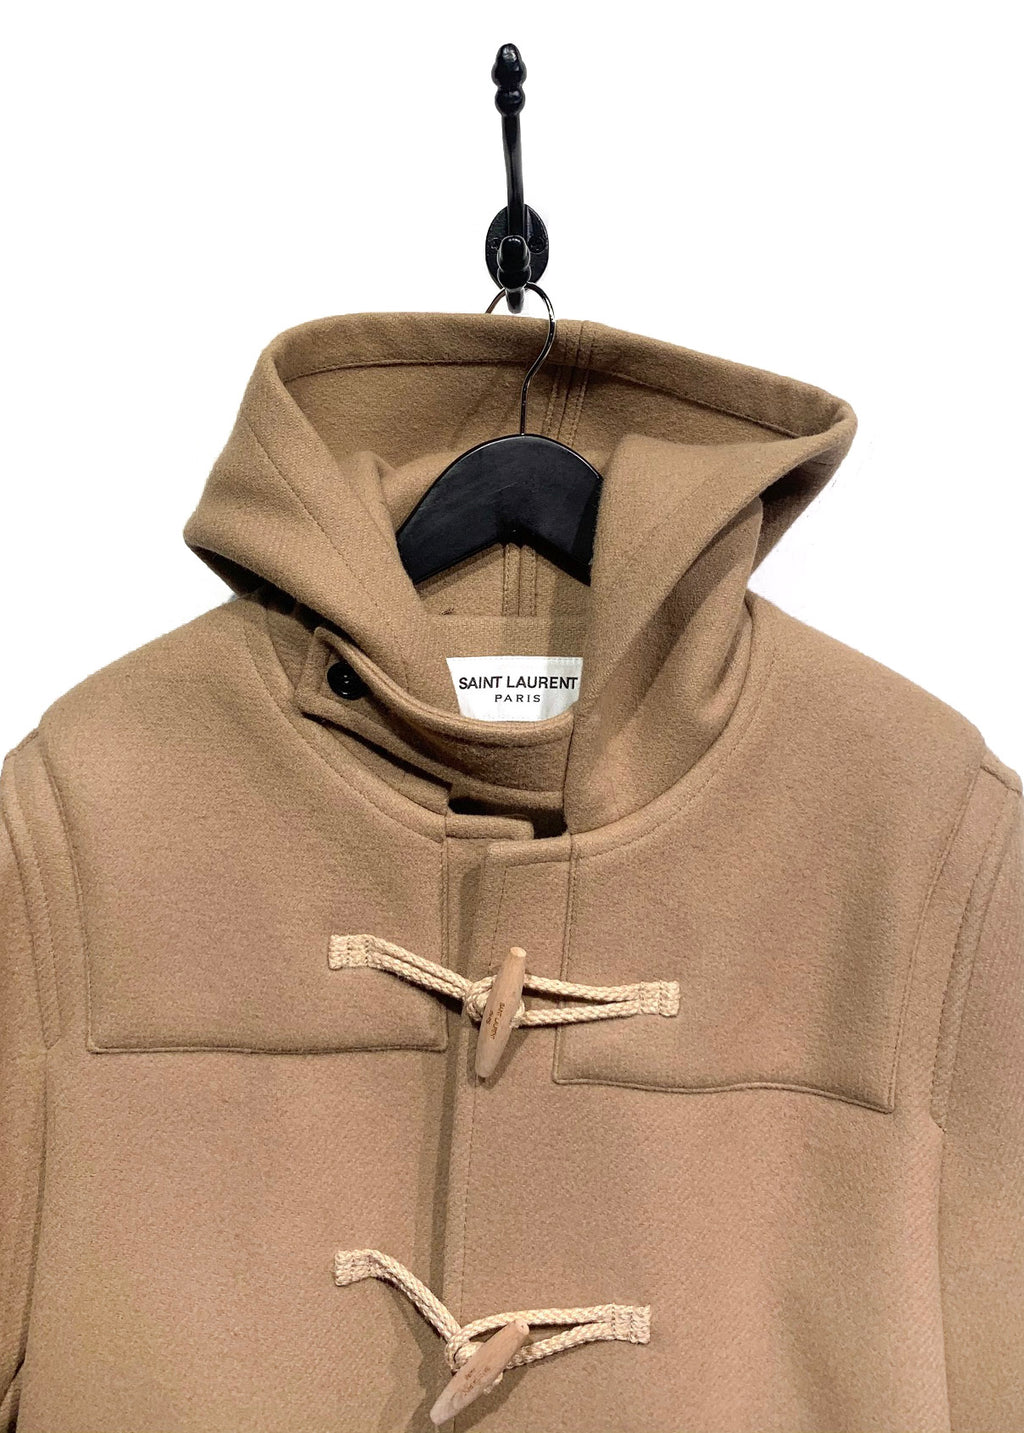 Saint Laurent Camel Toggle Closure Duffle Coat